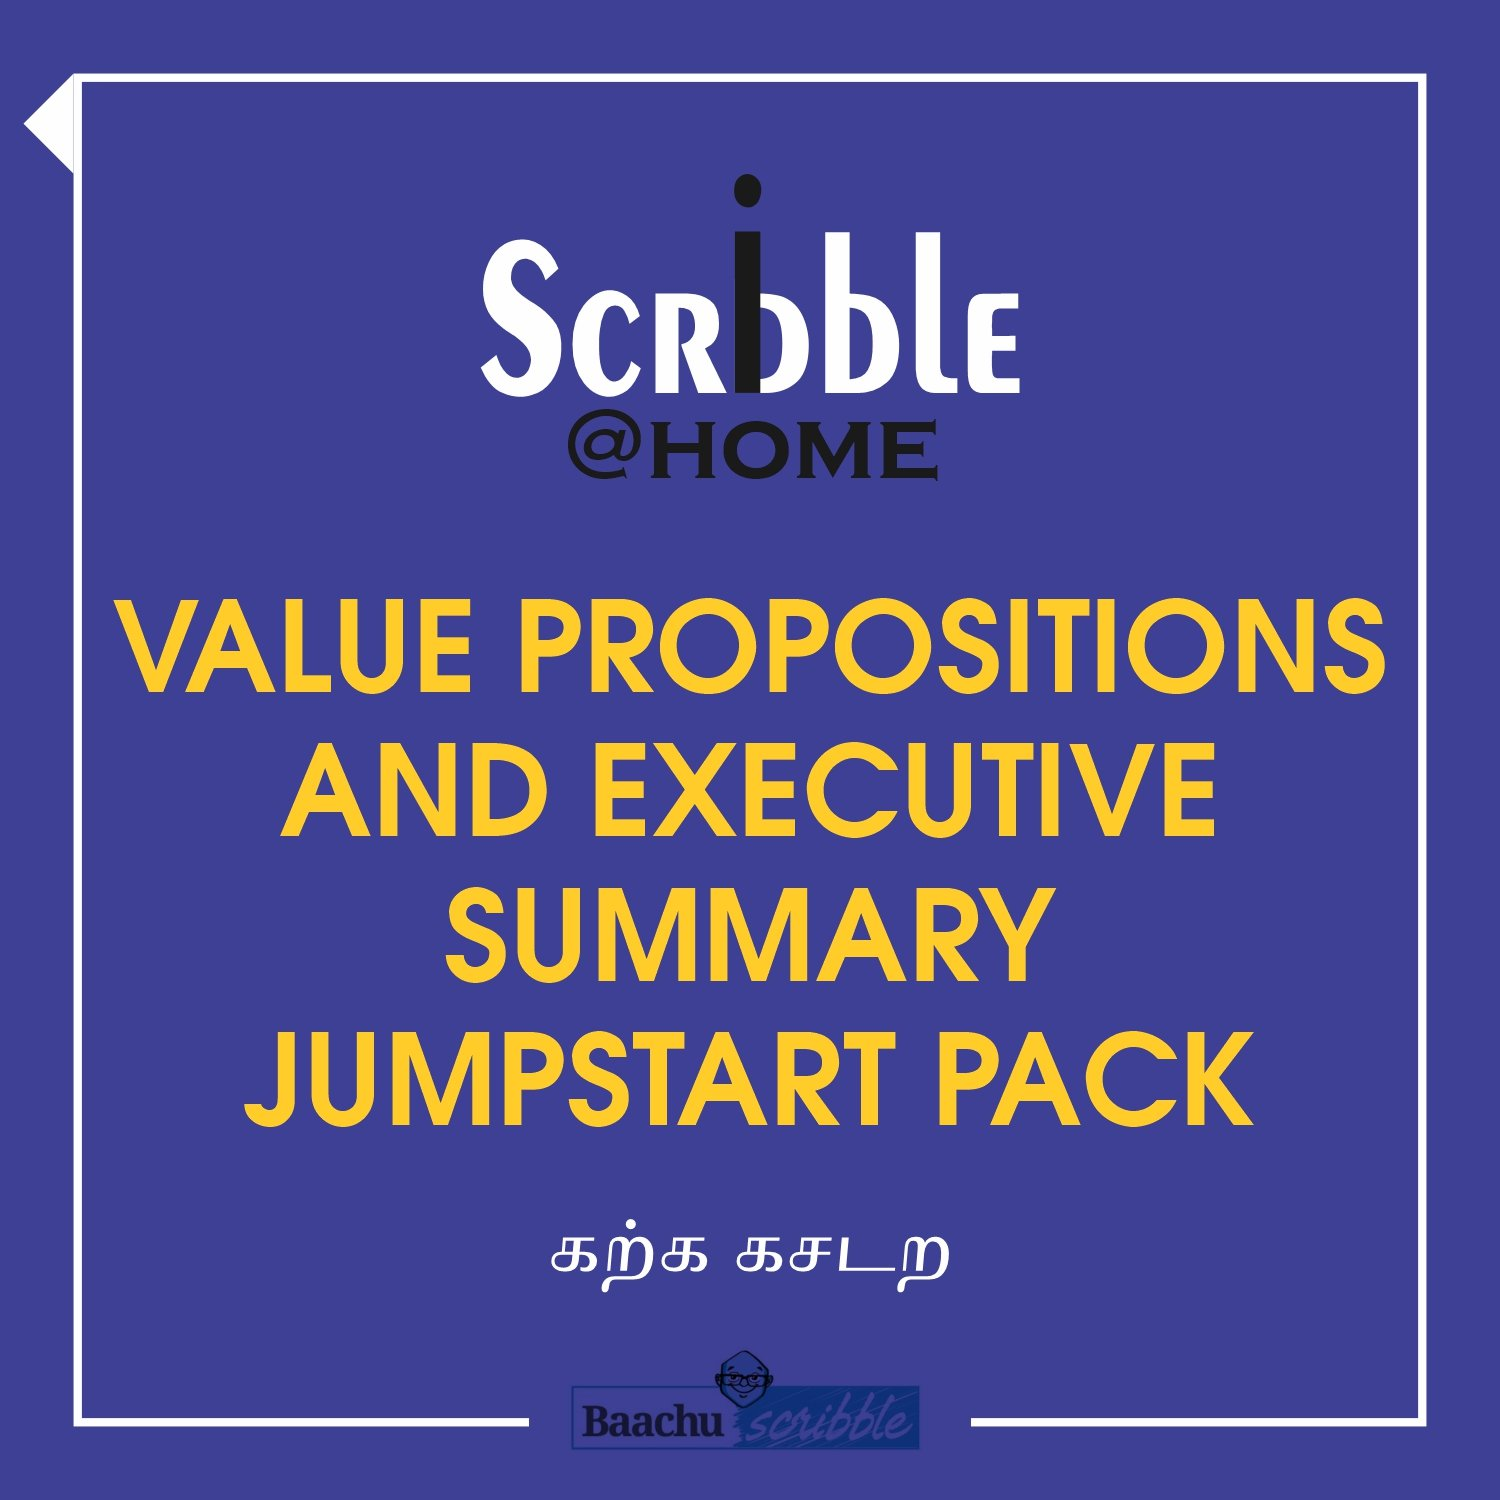 Value Propositions and Executive Summary Jumpstart Pack